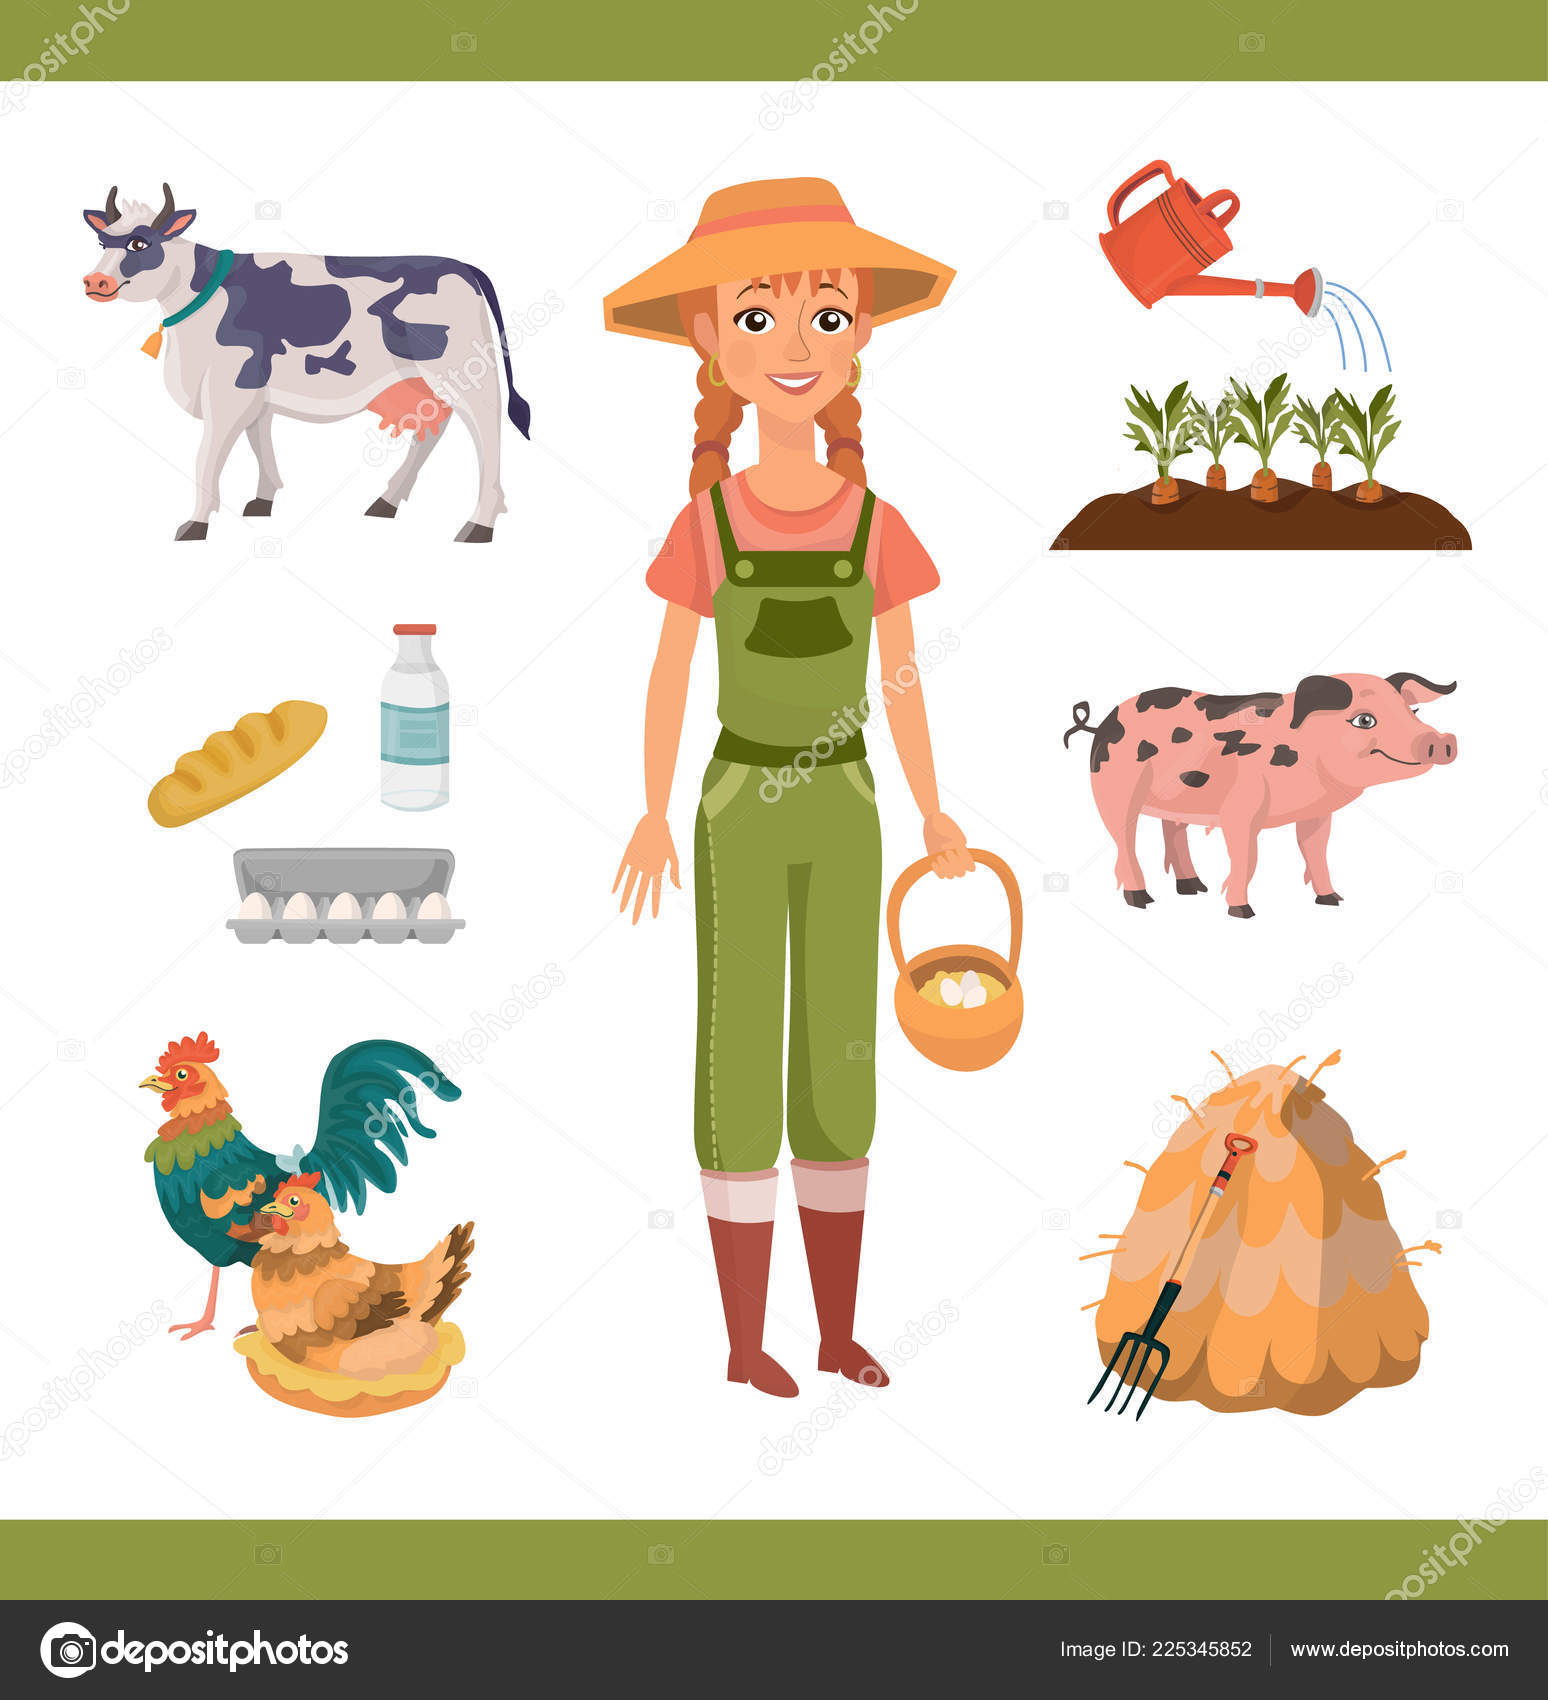 hight resolution of cartoon farm clipart collection cheerful ginger woman braids farm worker stock vector